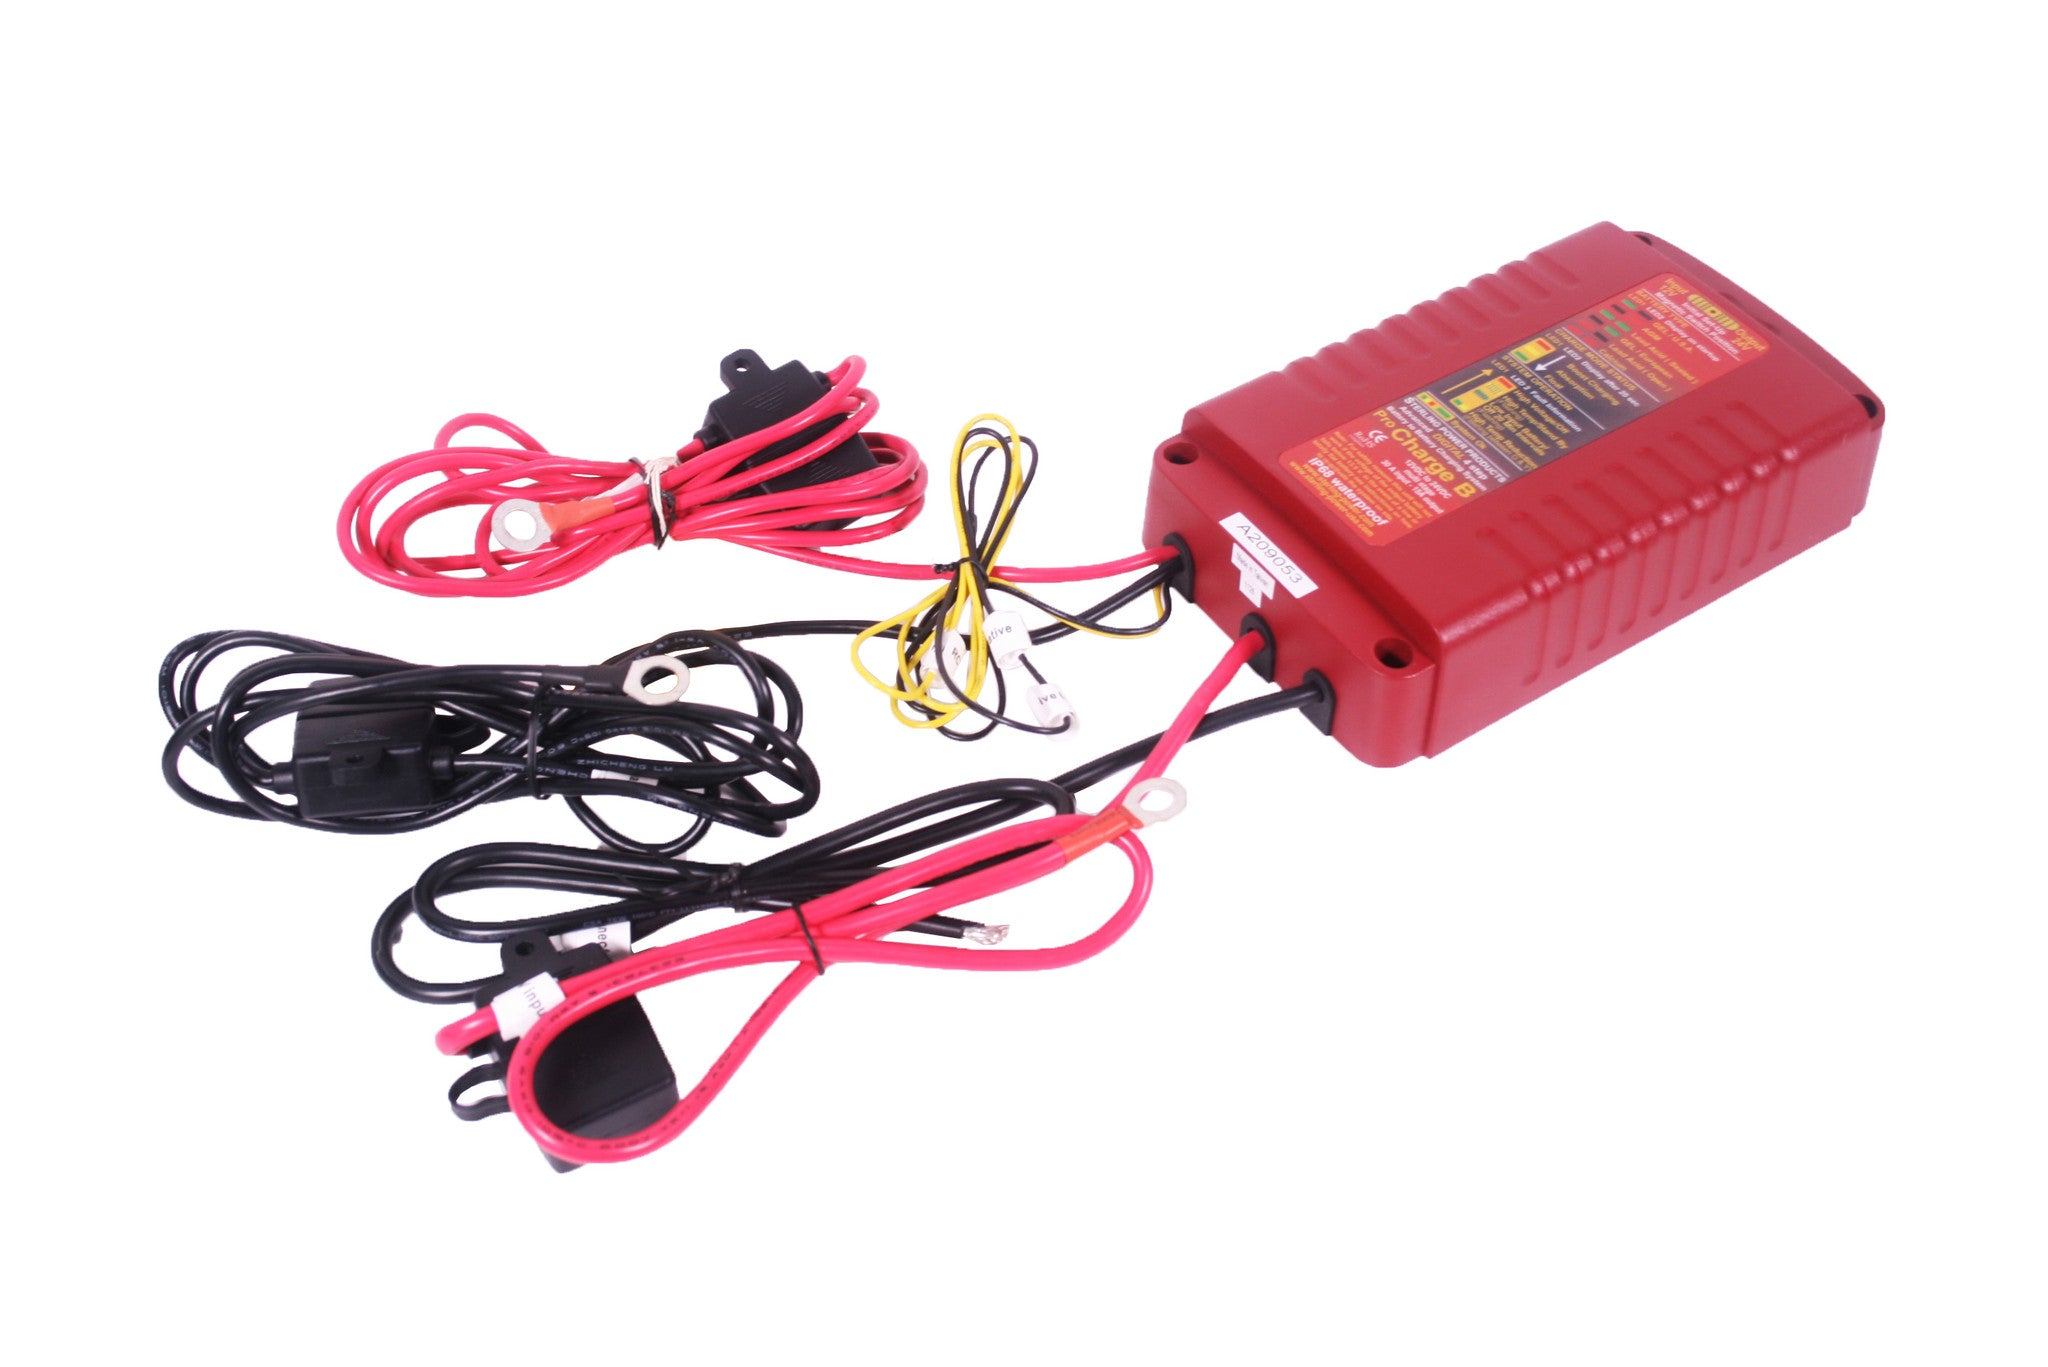 Pro Charge B BBW (20A 12V/24V/36V)  (Waterproof BTB Charger)